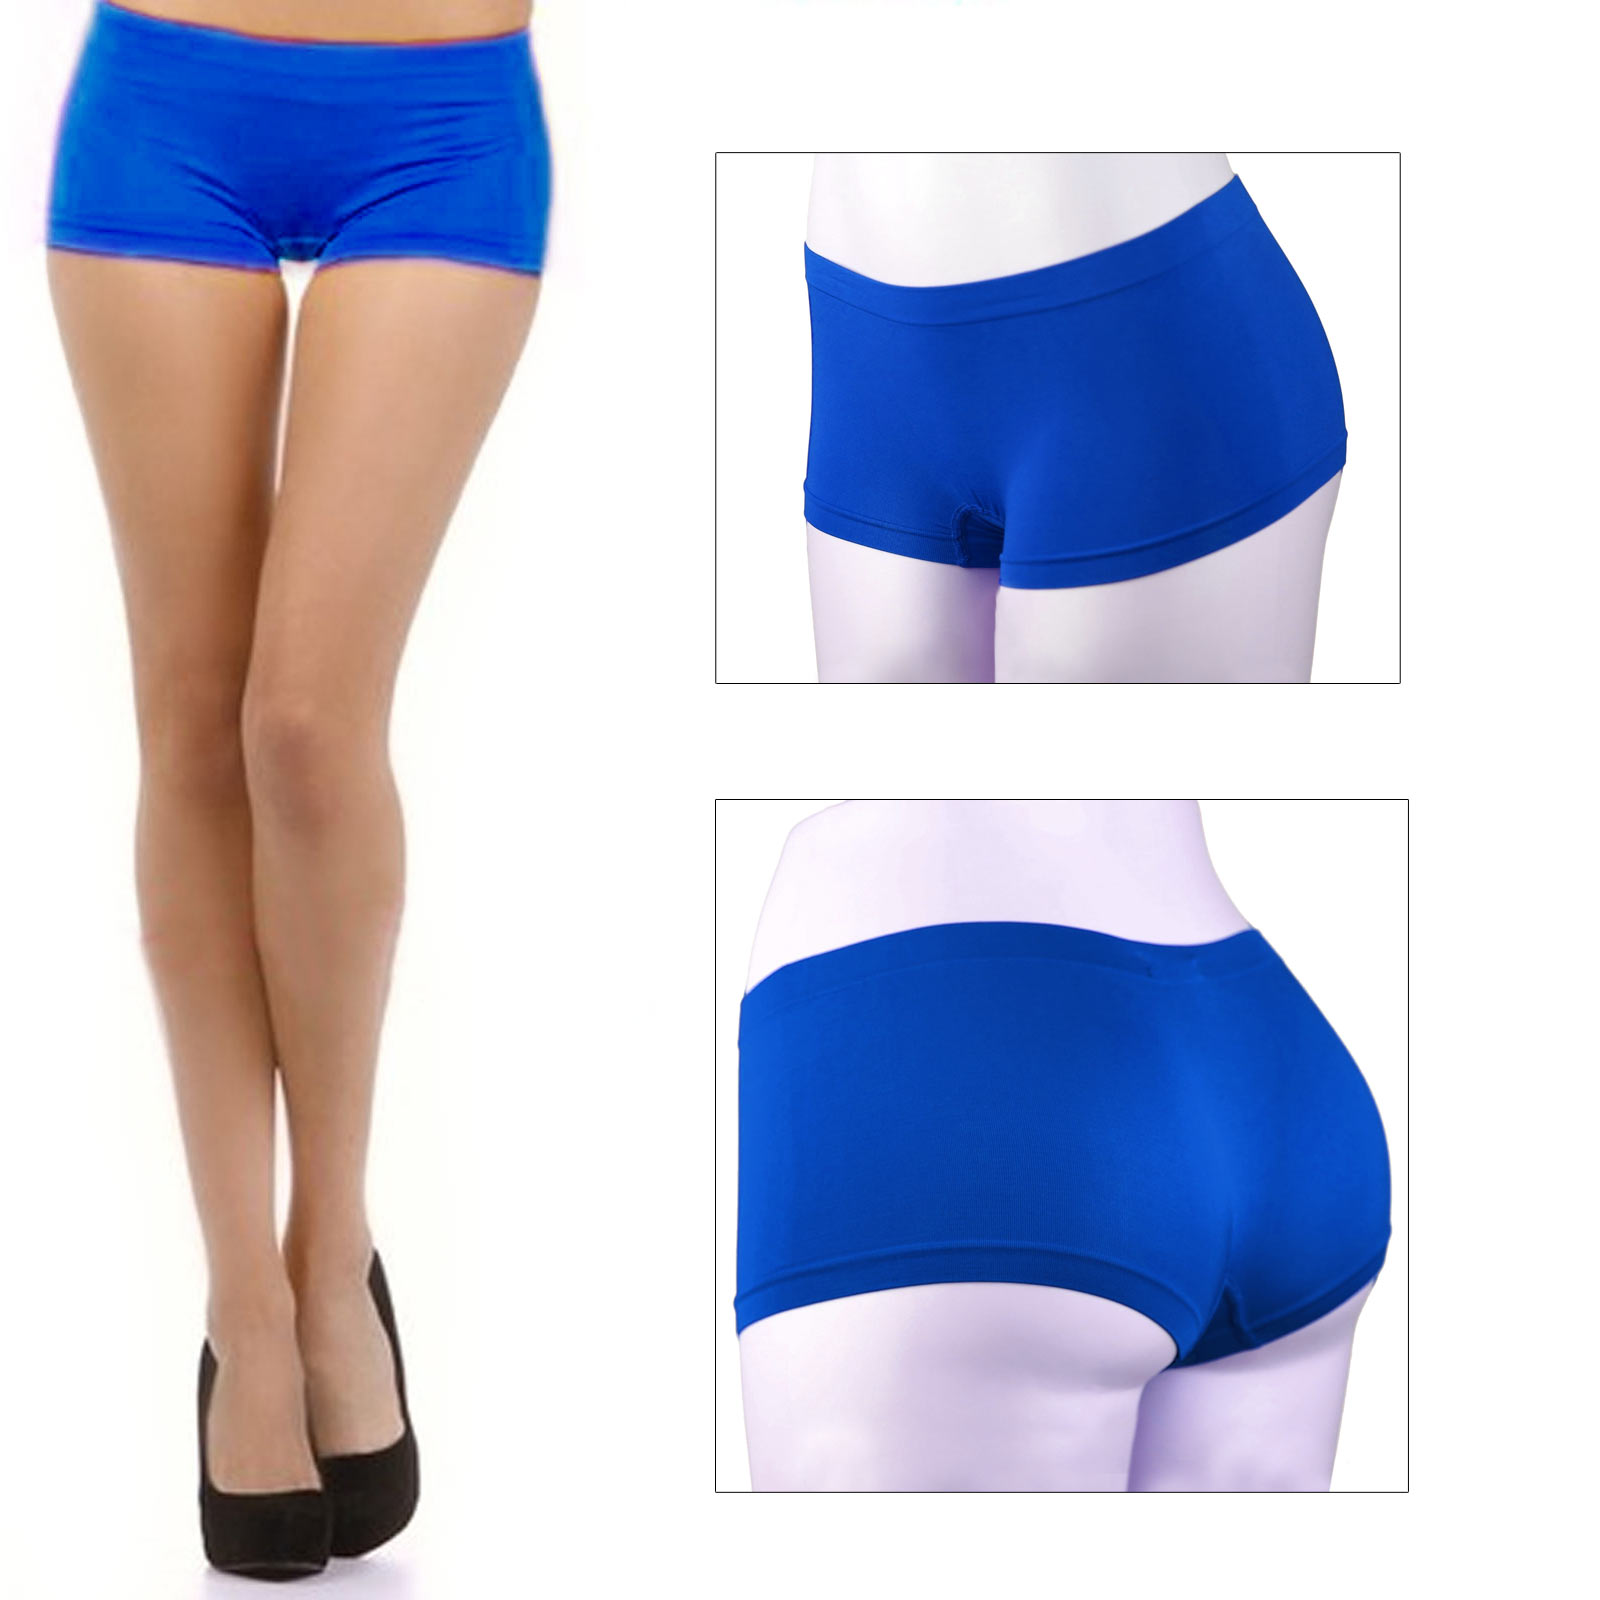 New Stretch Seamless Dance Exercise Booty Mini Panties Boy Shorts Brief Spankies